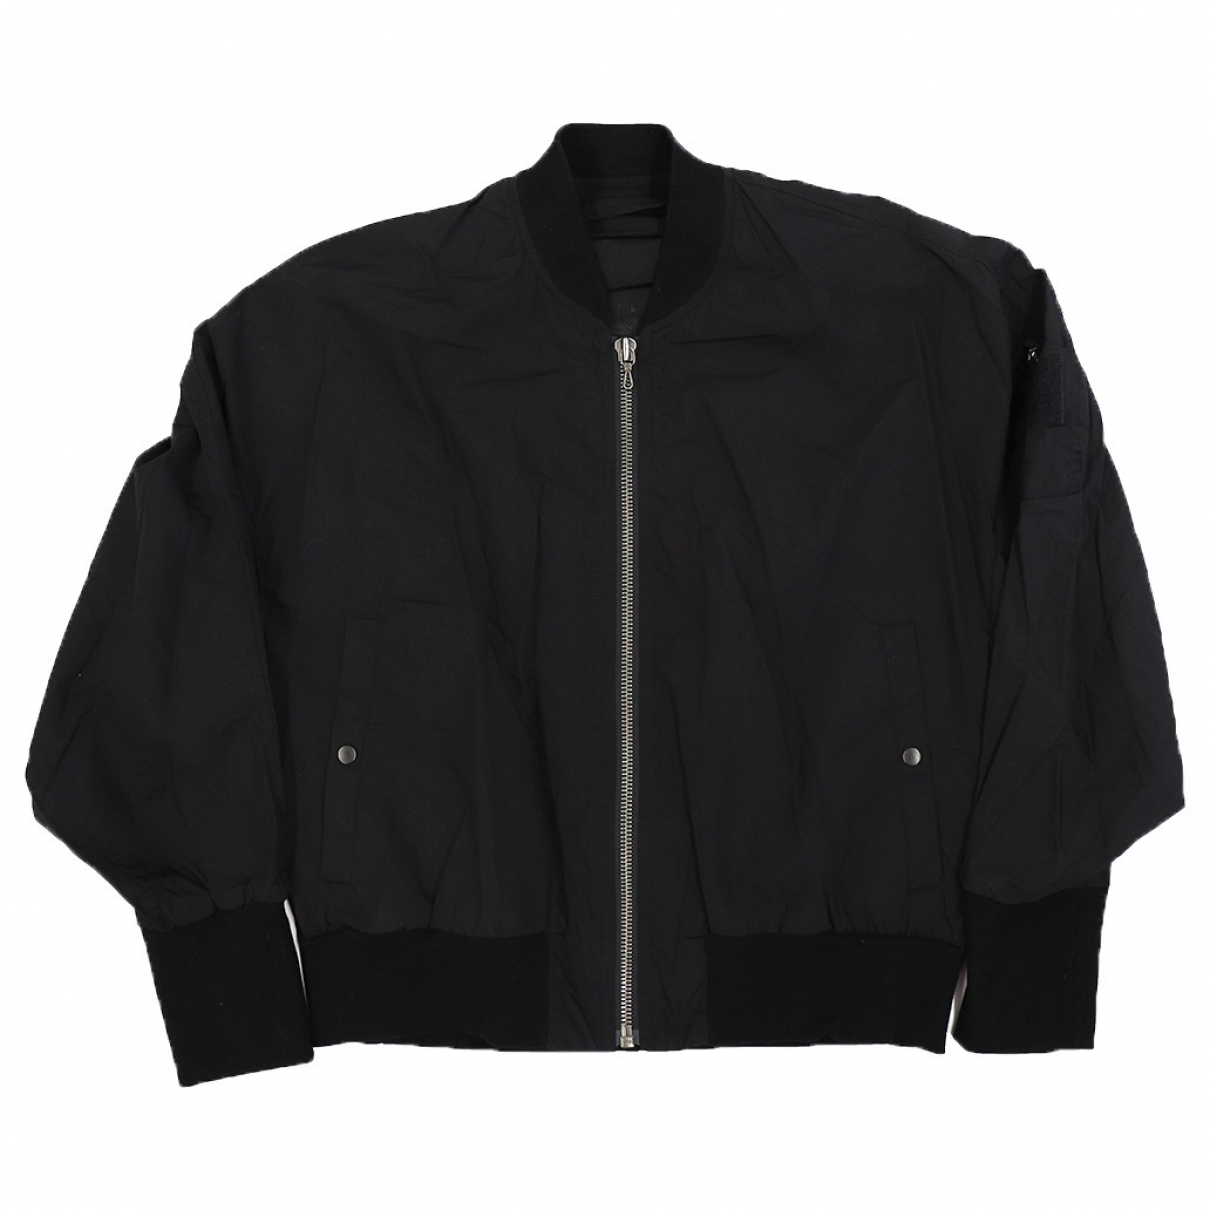 Julius 7 \N Black jacket  for Men 1 0 - 6